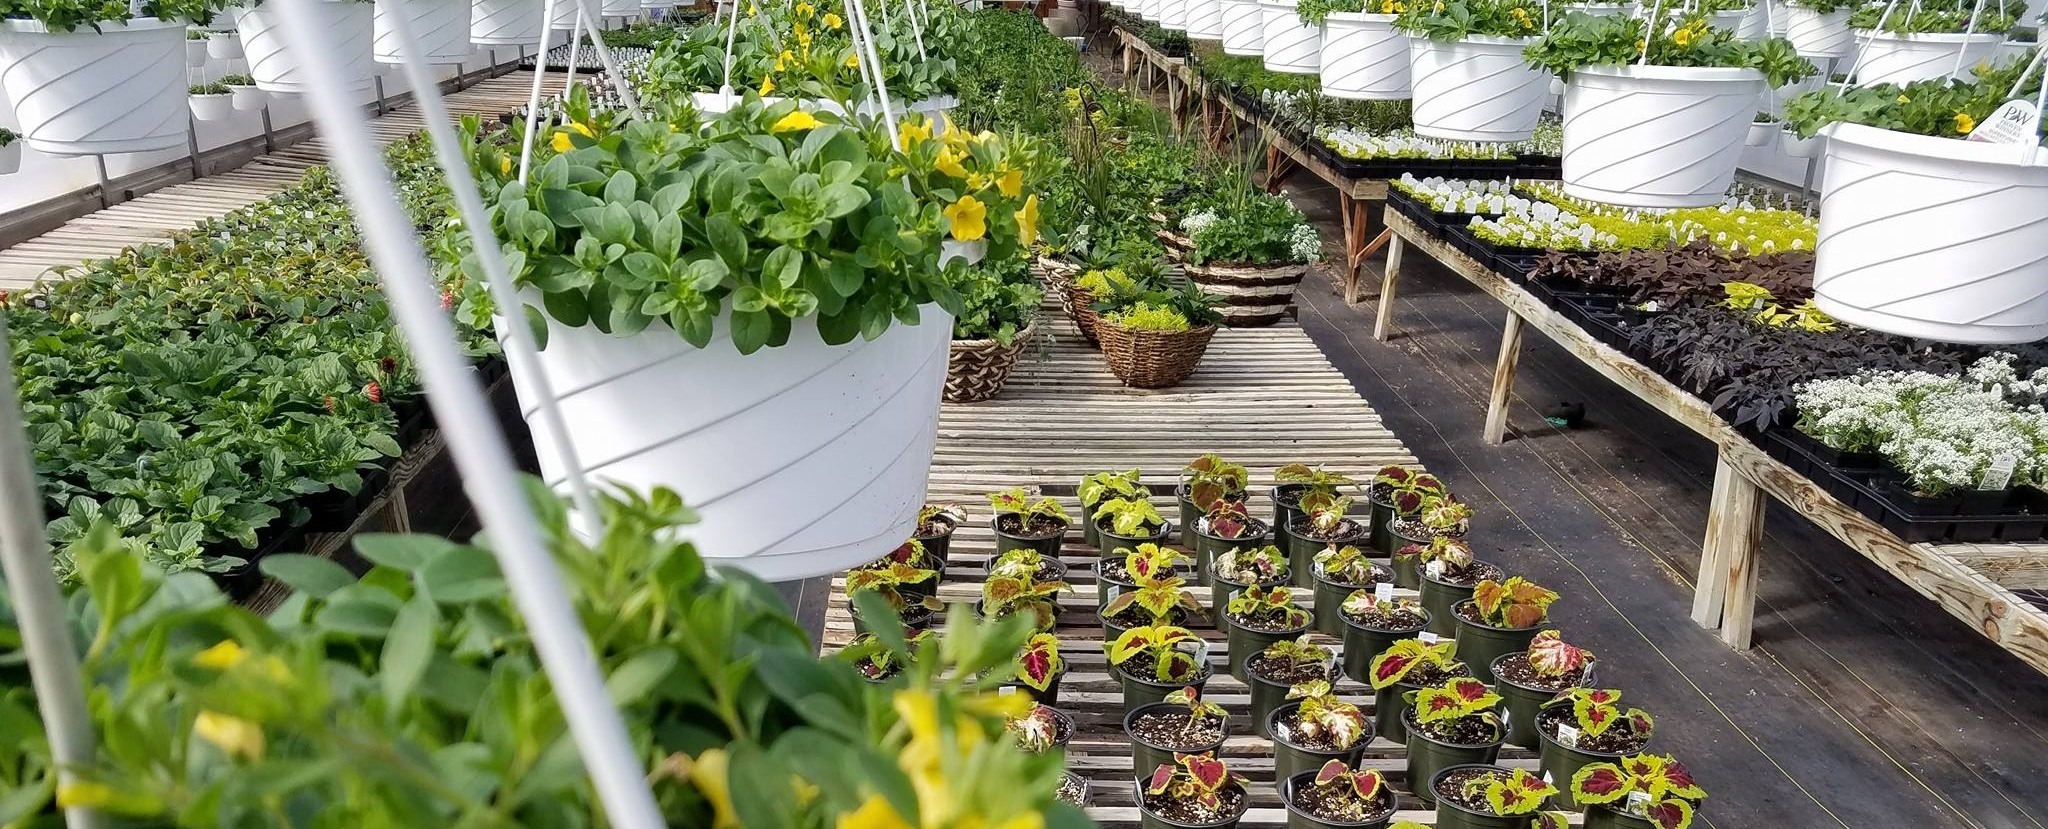 Hanging flower baskets and coleus seedlings in a greenhouse